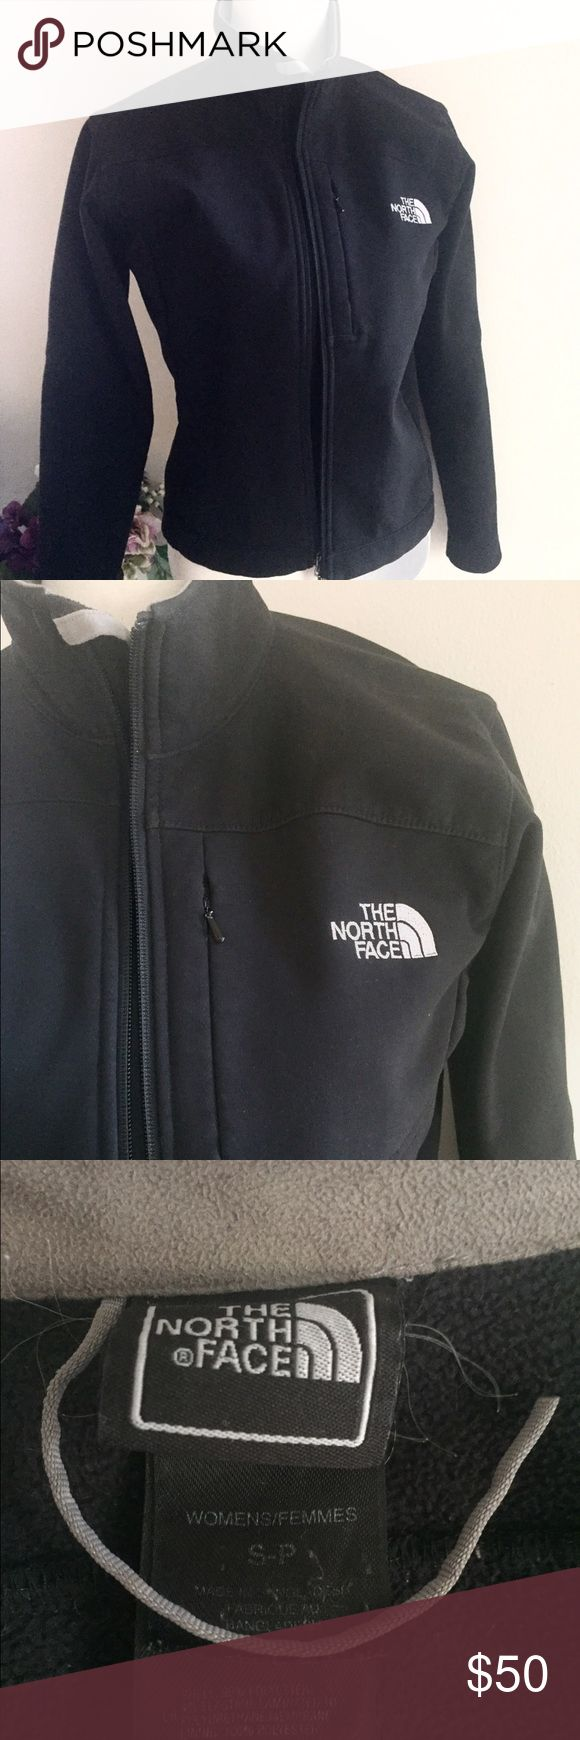 Apex North Face Shell Jacket In excellent condition other than the loop thing by the tag not being in tact for hanging it on hooks. Very warm and great as a windbreaker/all season jacket!! Size small. The North Face Jackets & Coats Utility Jackets